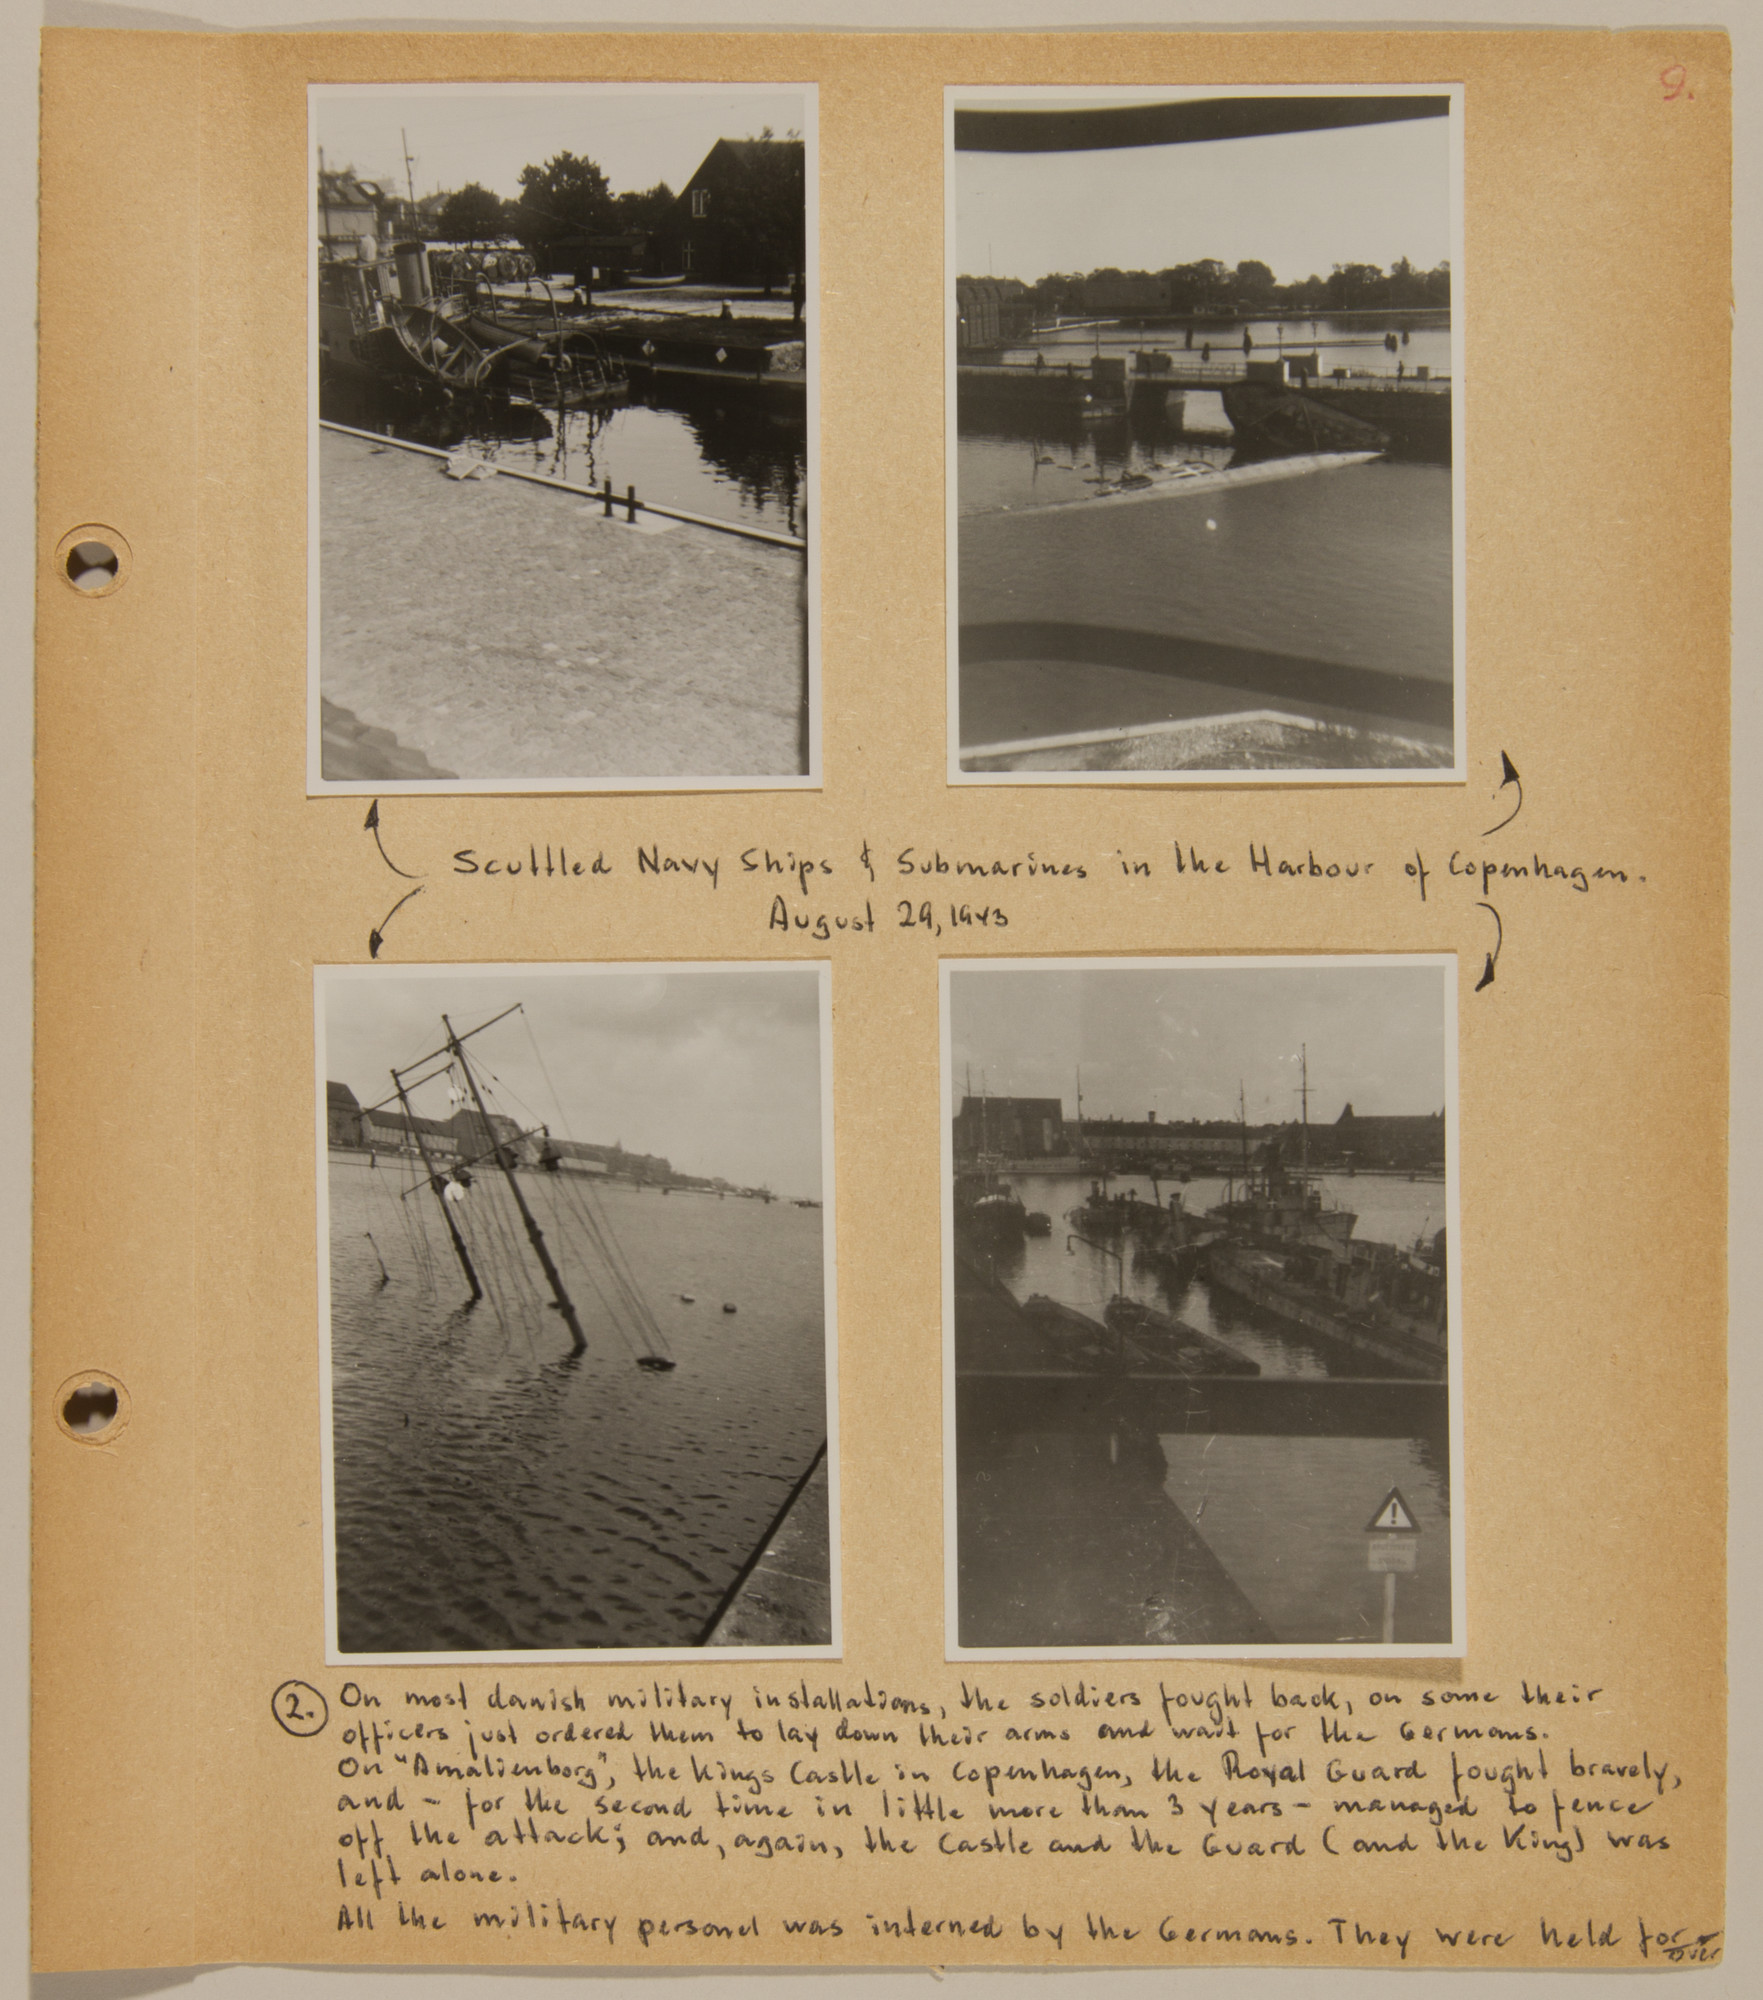 Page from volume four of a set of scrapbooks compiled by Bjorn Sibbern, a Danish policeman and resistance member, documenting the German occupation of Denmark.  This page contains photographs of the resistance by the Danish army after it was ordered to lay down its arms and the imposition of martial law.